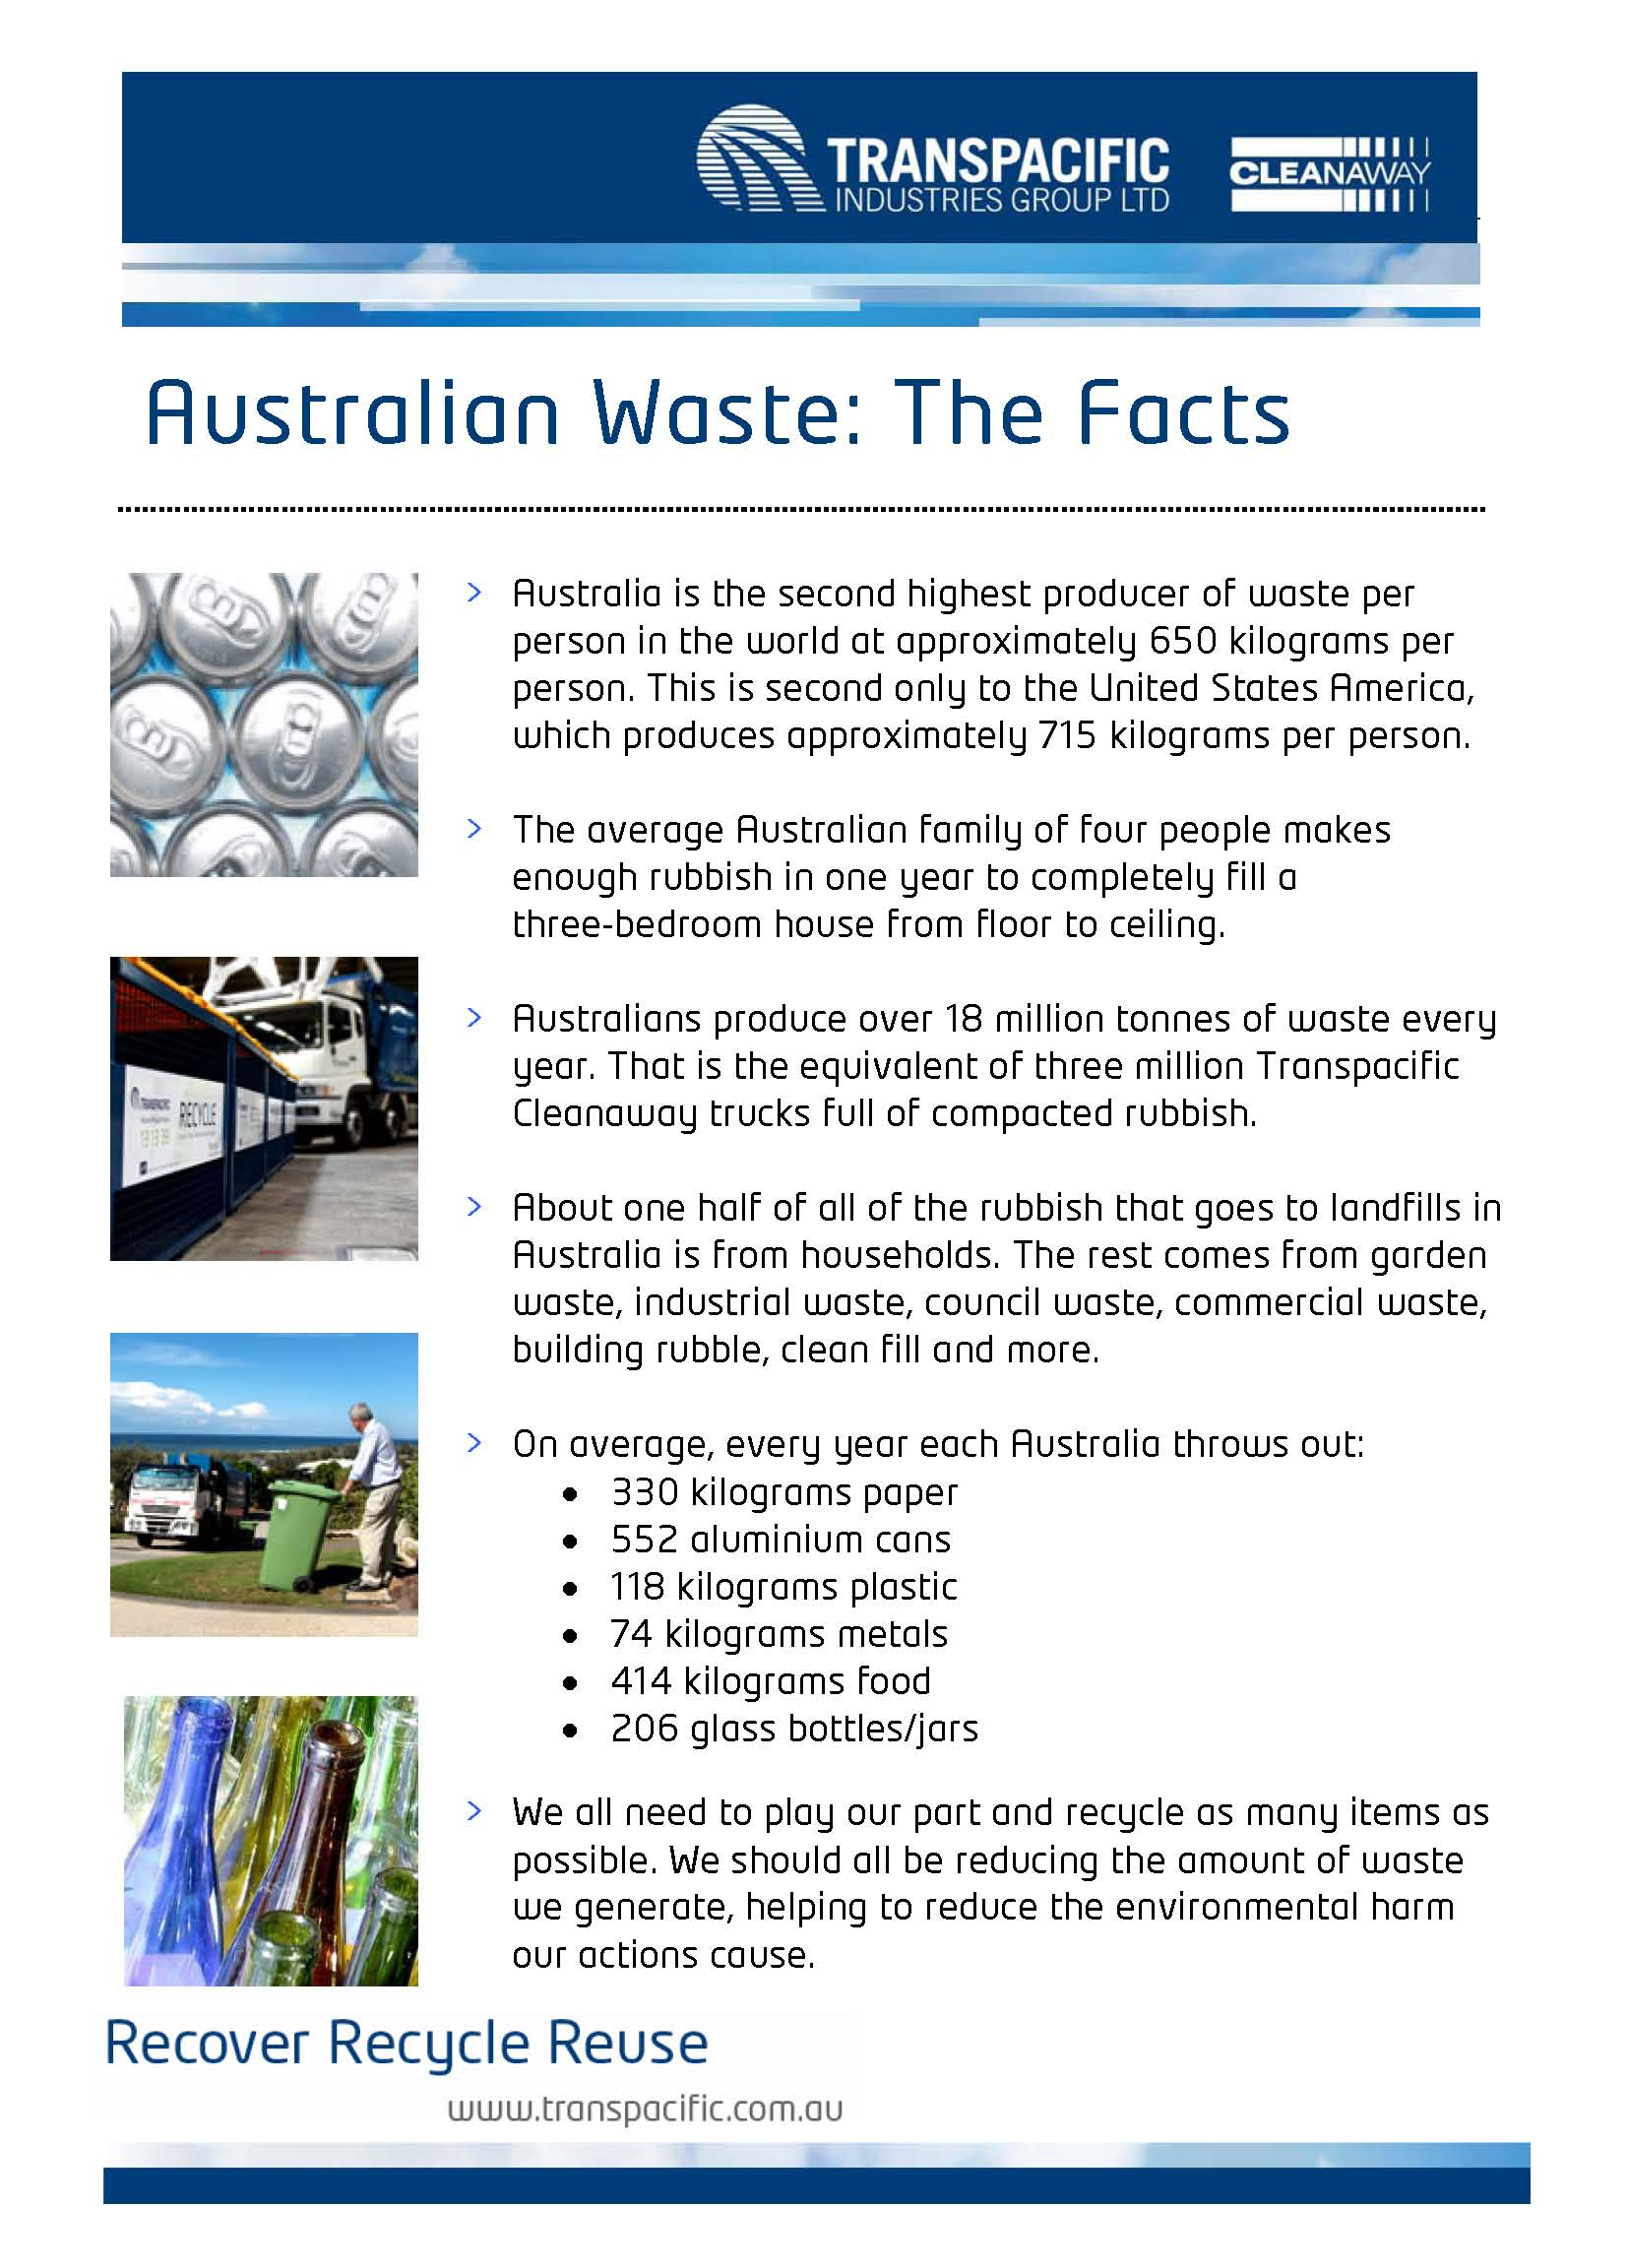 The Facts about Australian Waste